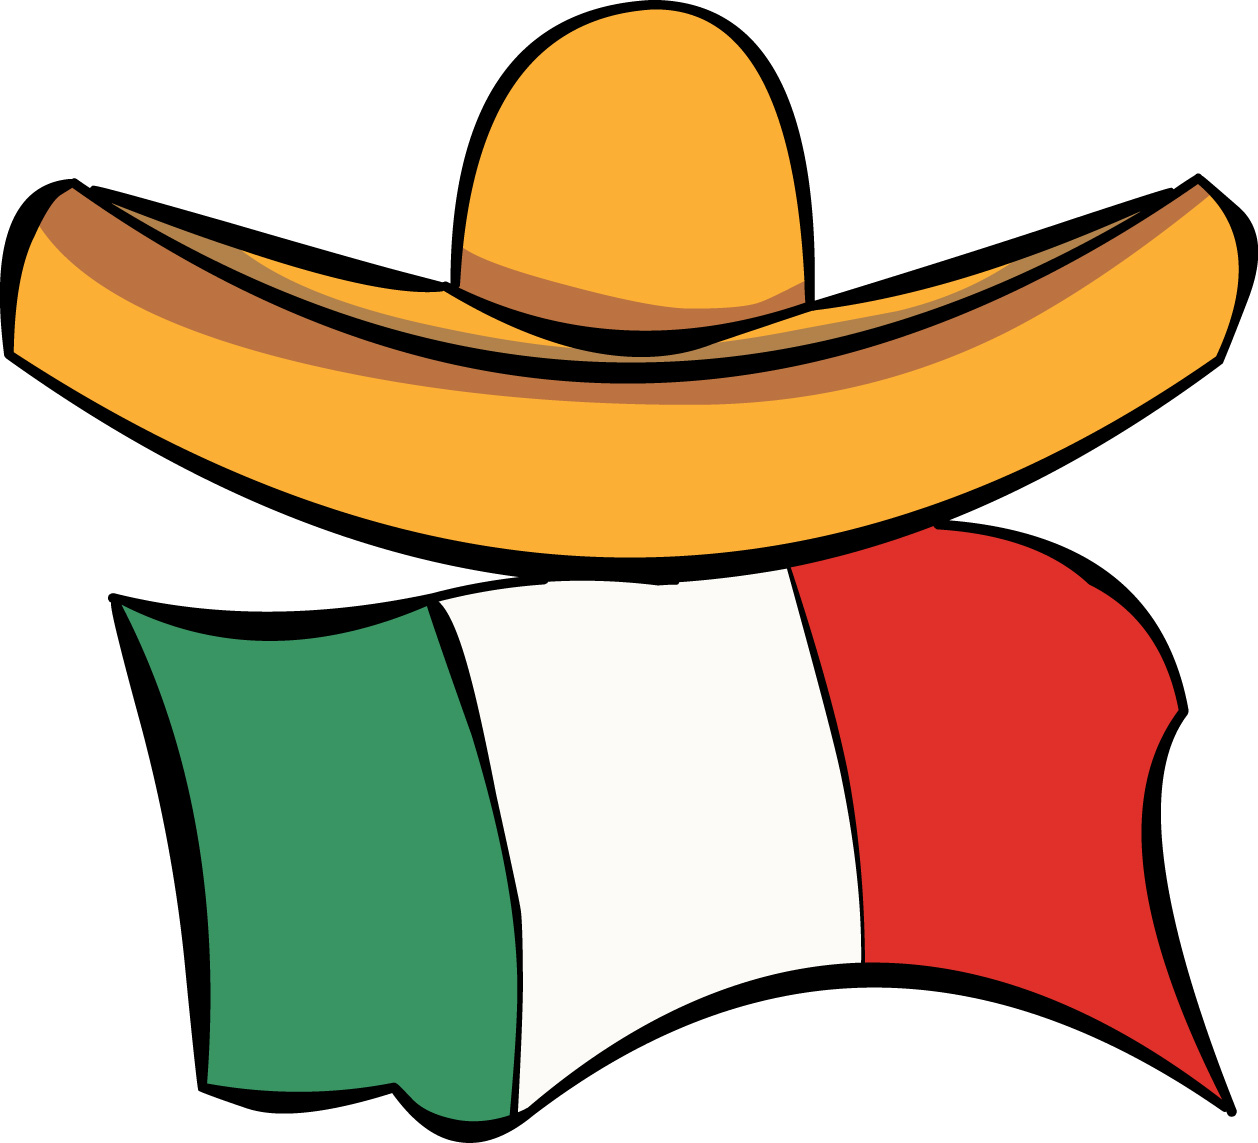 Free Spain Cliparts, Download Free Clip Art, Free Clip Art.